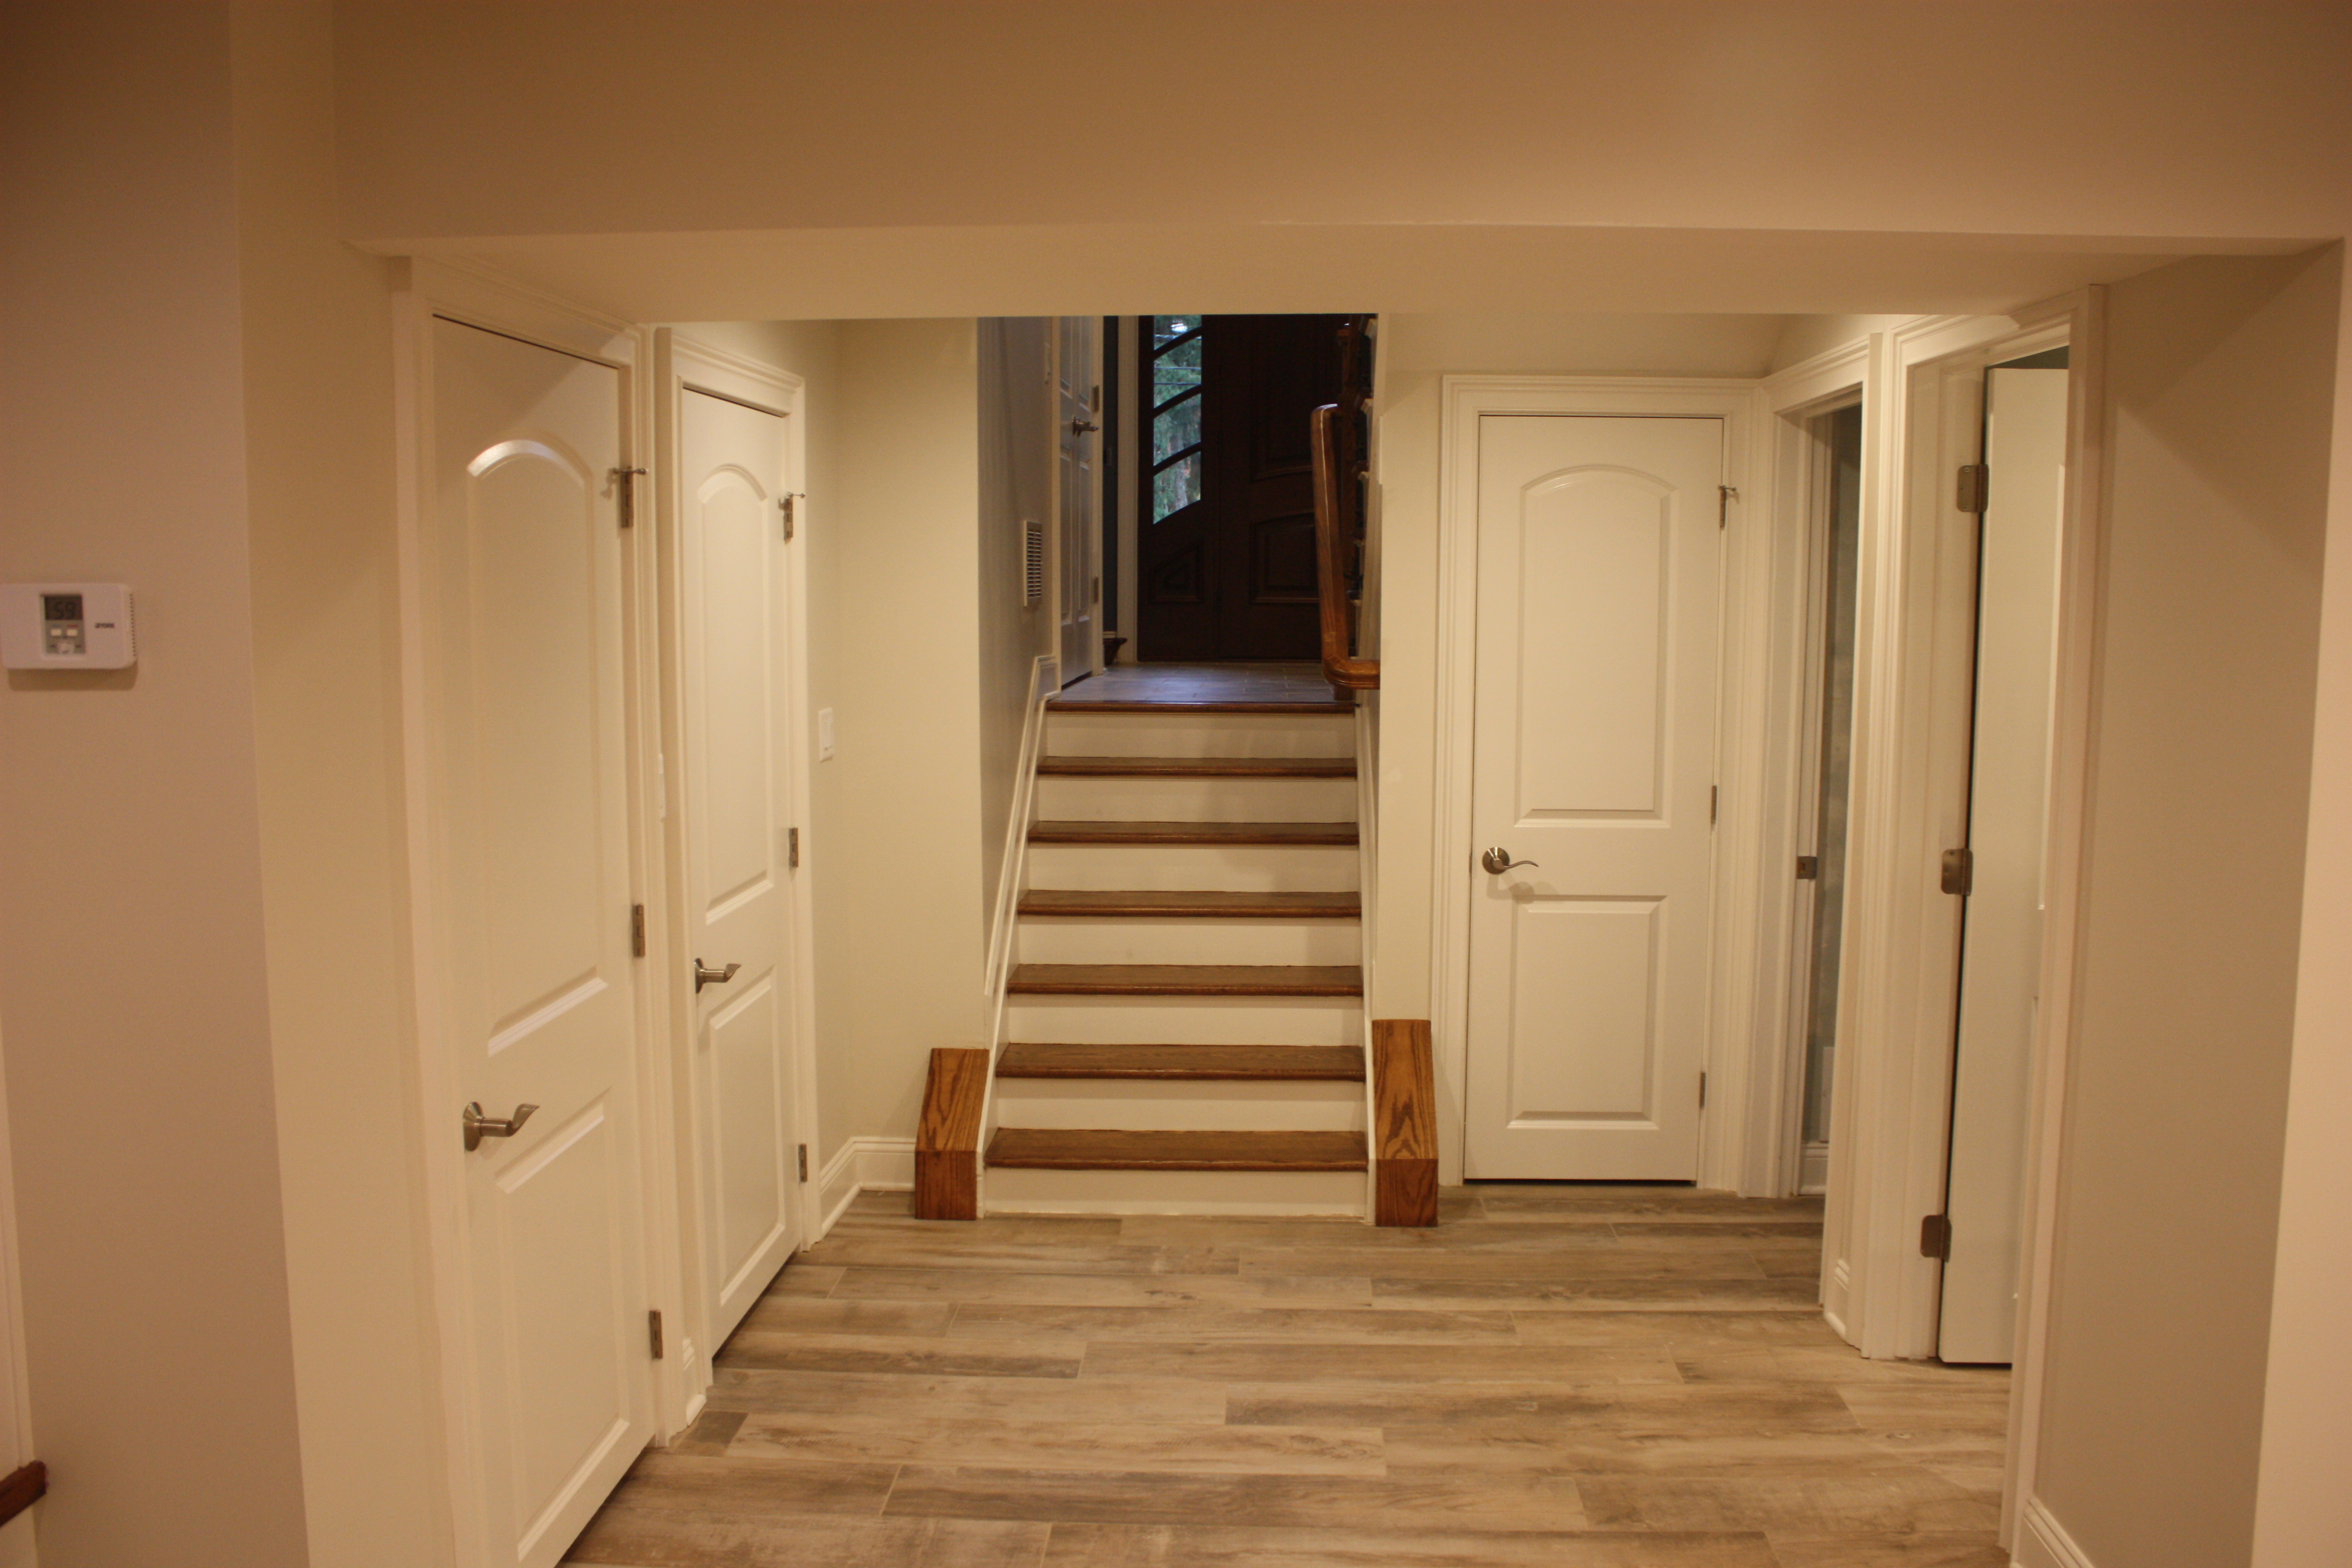 After Renovation – Entryway